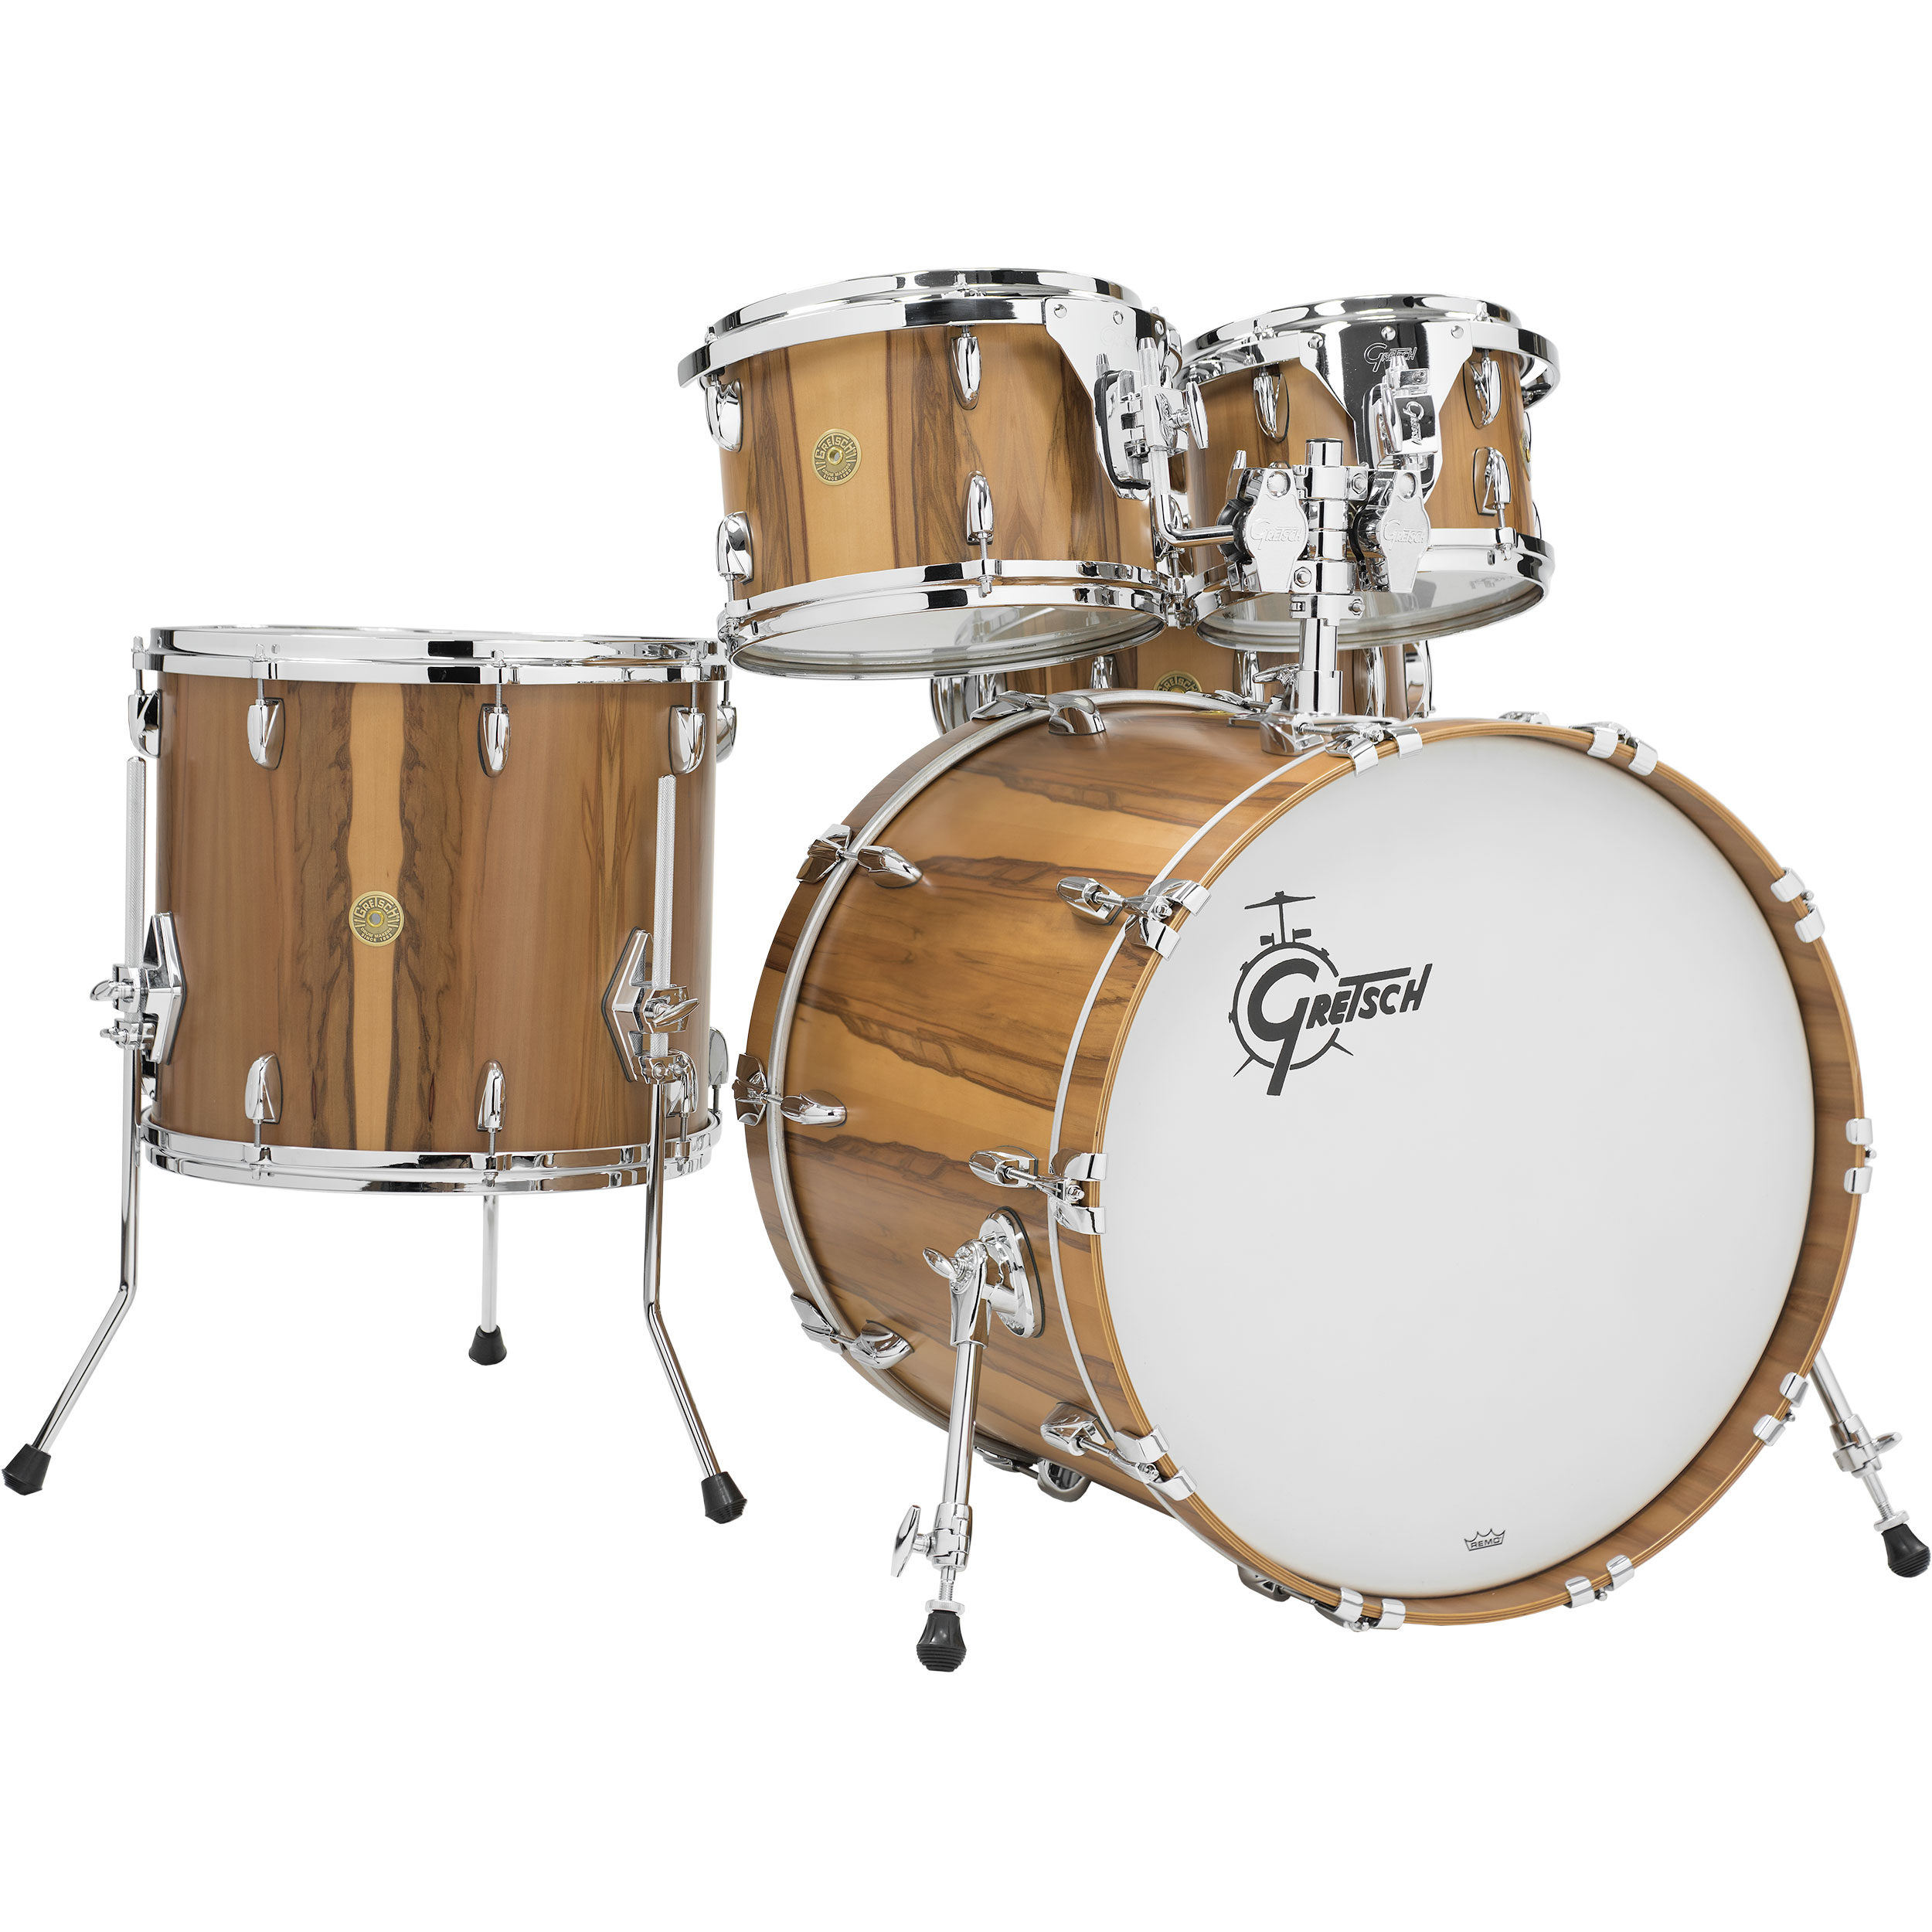 """Gretsch Limited Edition USA Custom Exotic Red Gum 5-Piece Drum Set Shell Pack (22"""" Bass, 10/12/16"""" Toms, 14"""" Snare)"""